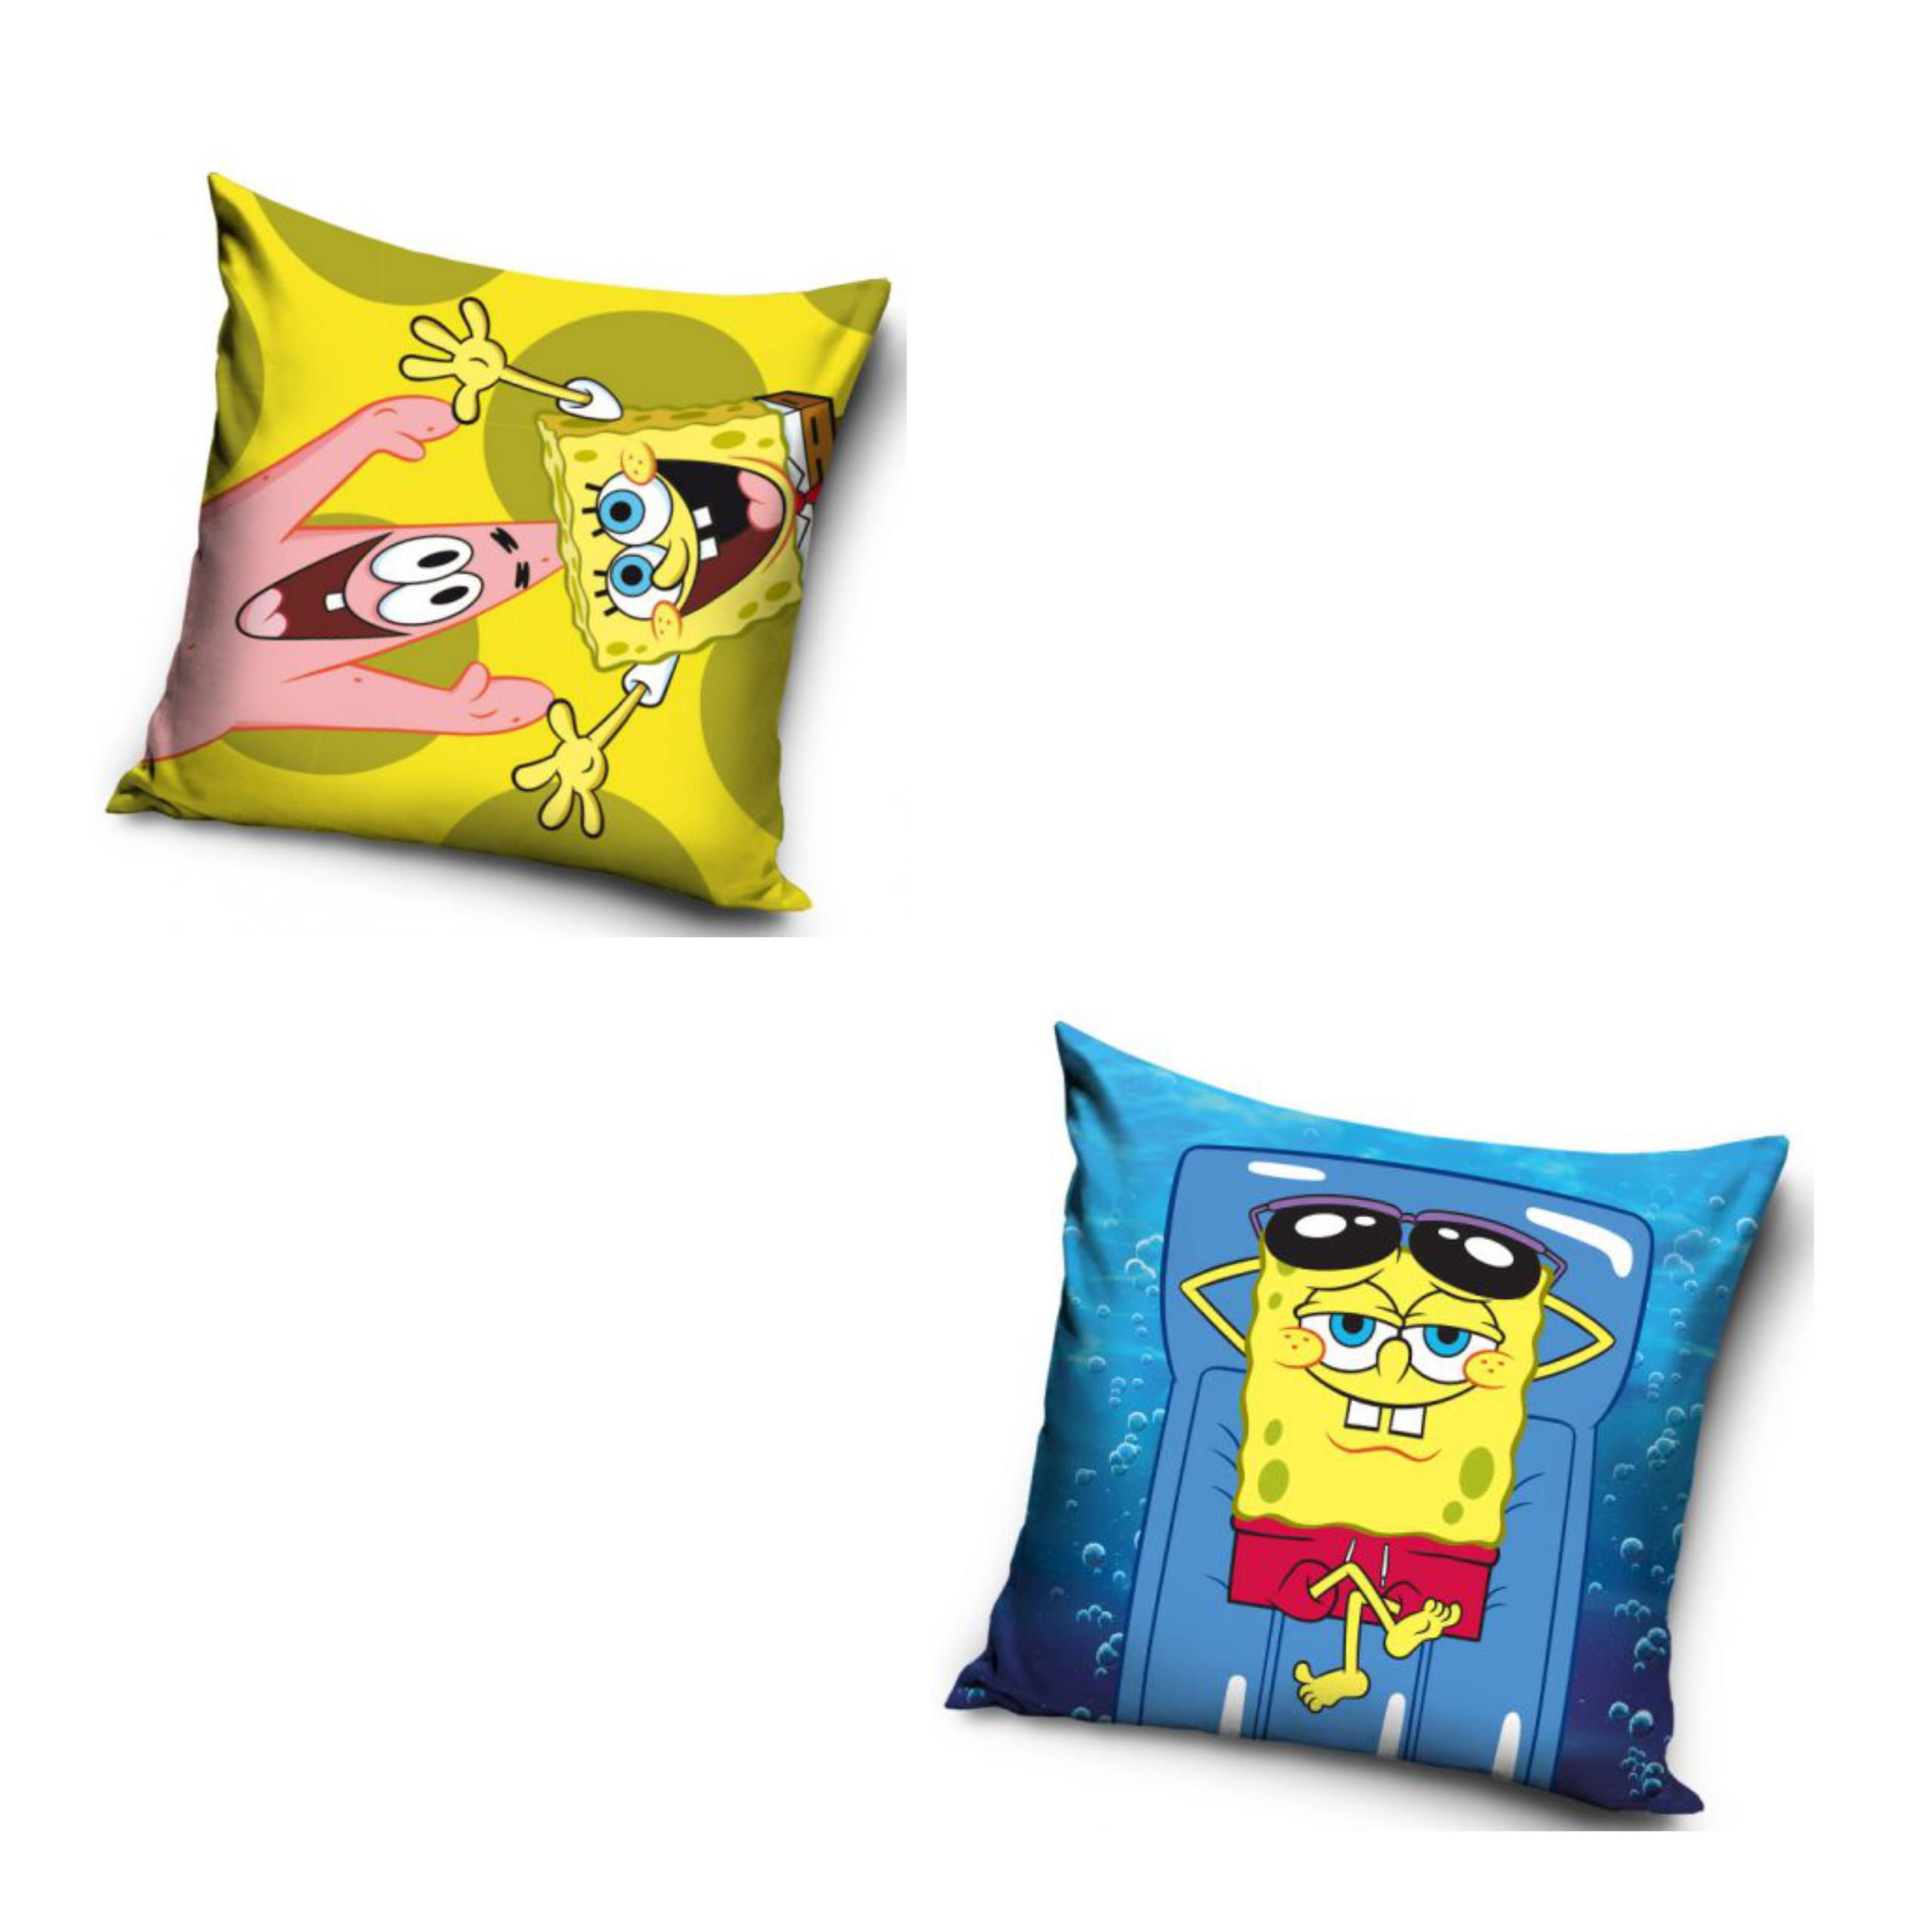 SpongeBob Square Pants Two Pack Cushion Set